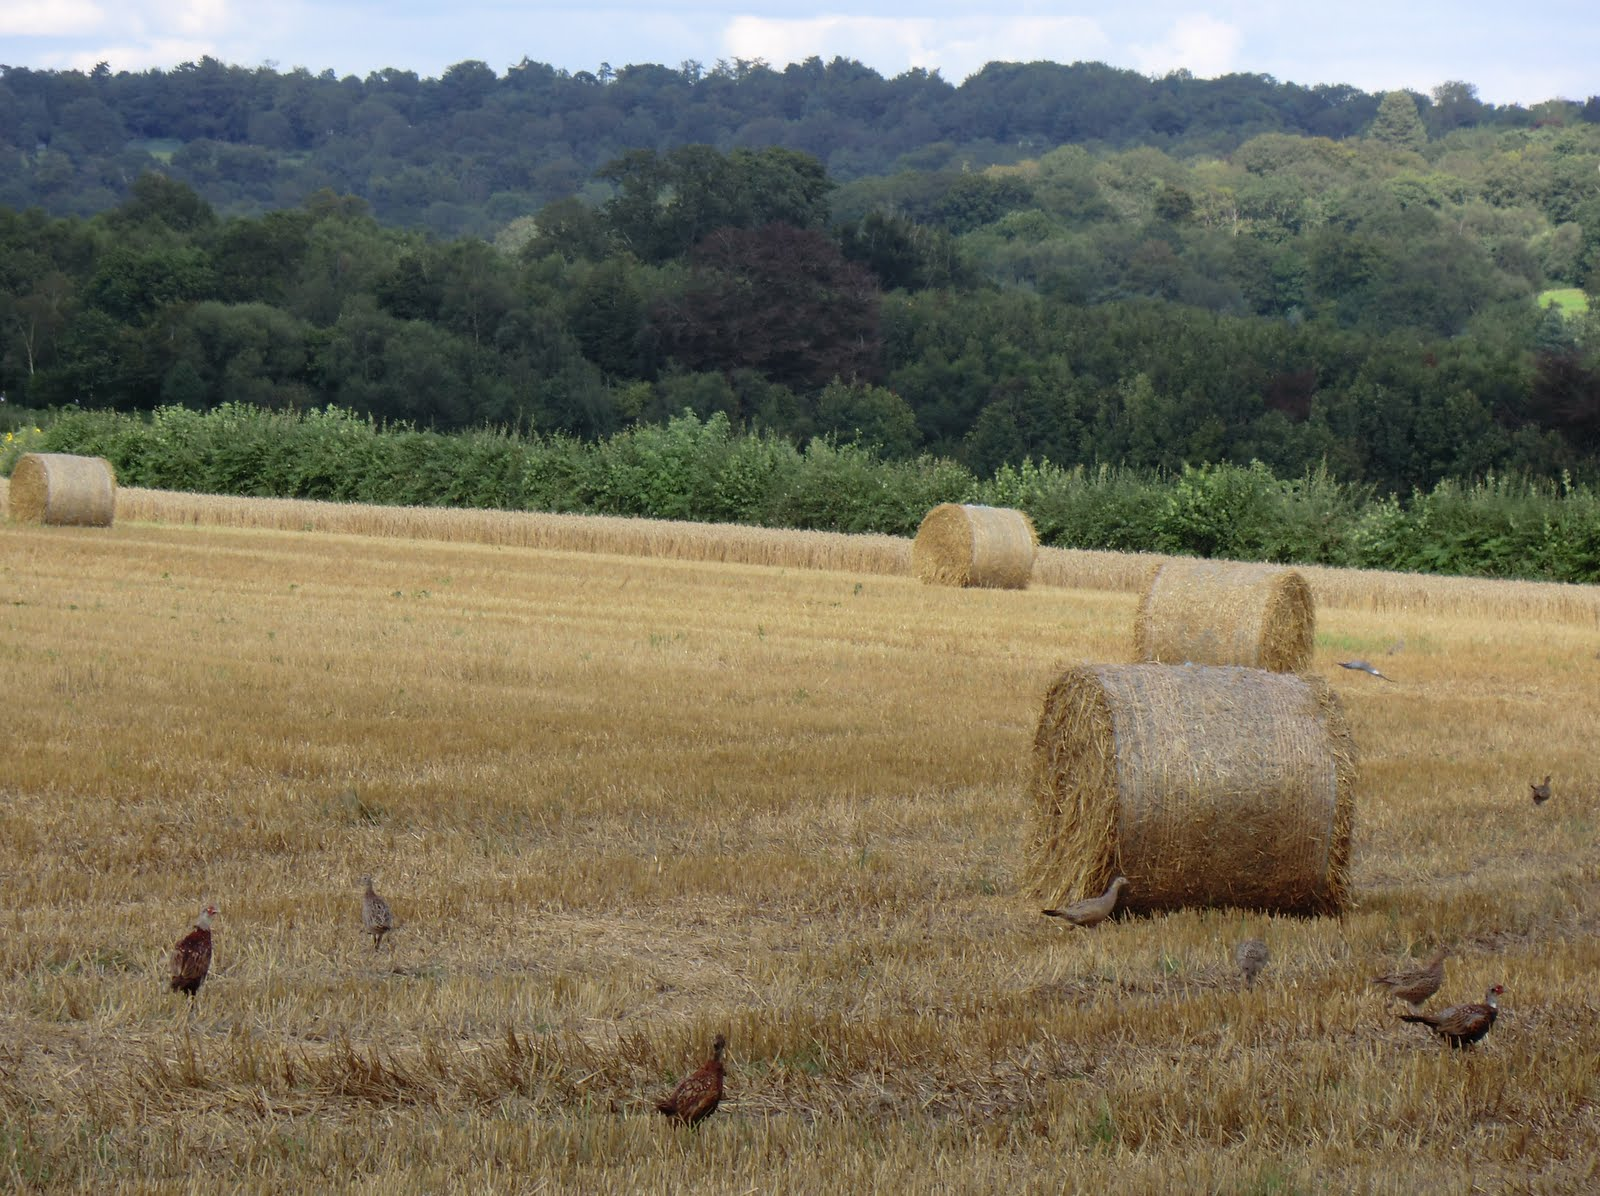 CIMG3430 Haystacks and pheasants at New Barn Farm